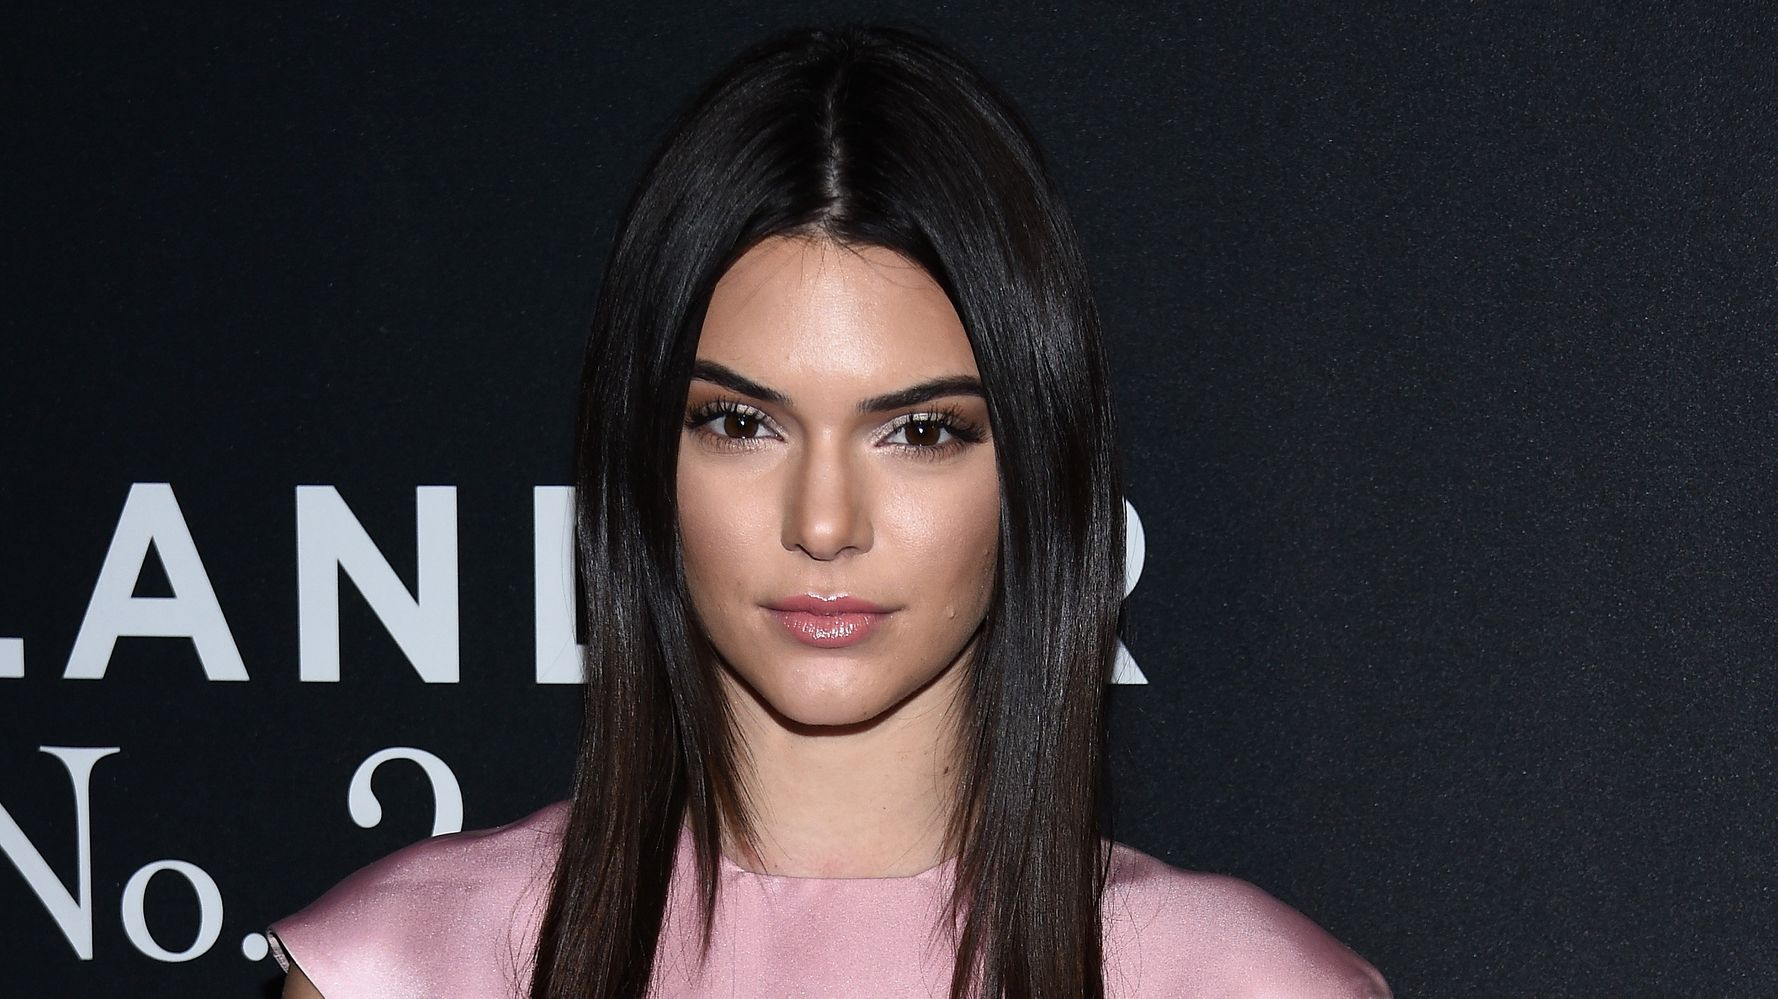 Kendall Jenner Sues Skin Care Company For $10 Million | HuffPost